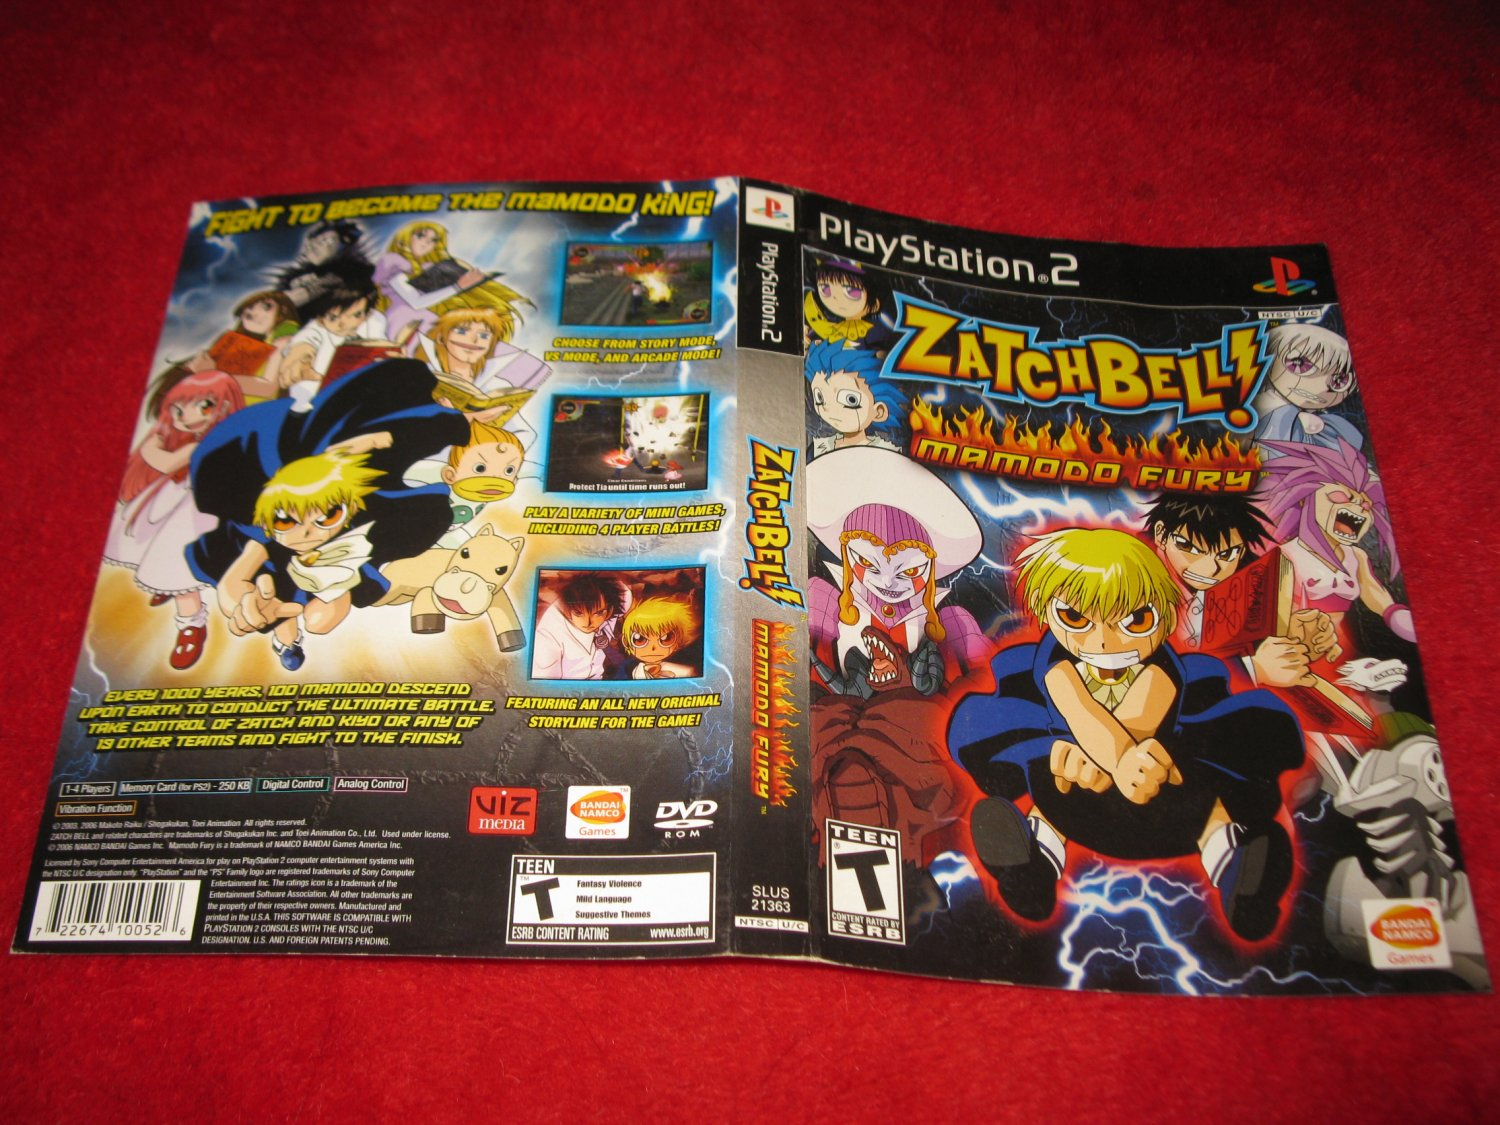 Zatchbell! Mamodo Fury : Playstation 2 PS2 Video Game Case Cover Art insert